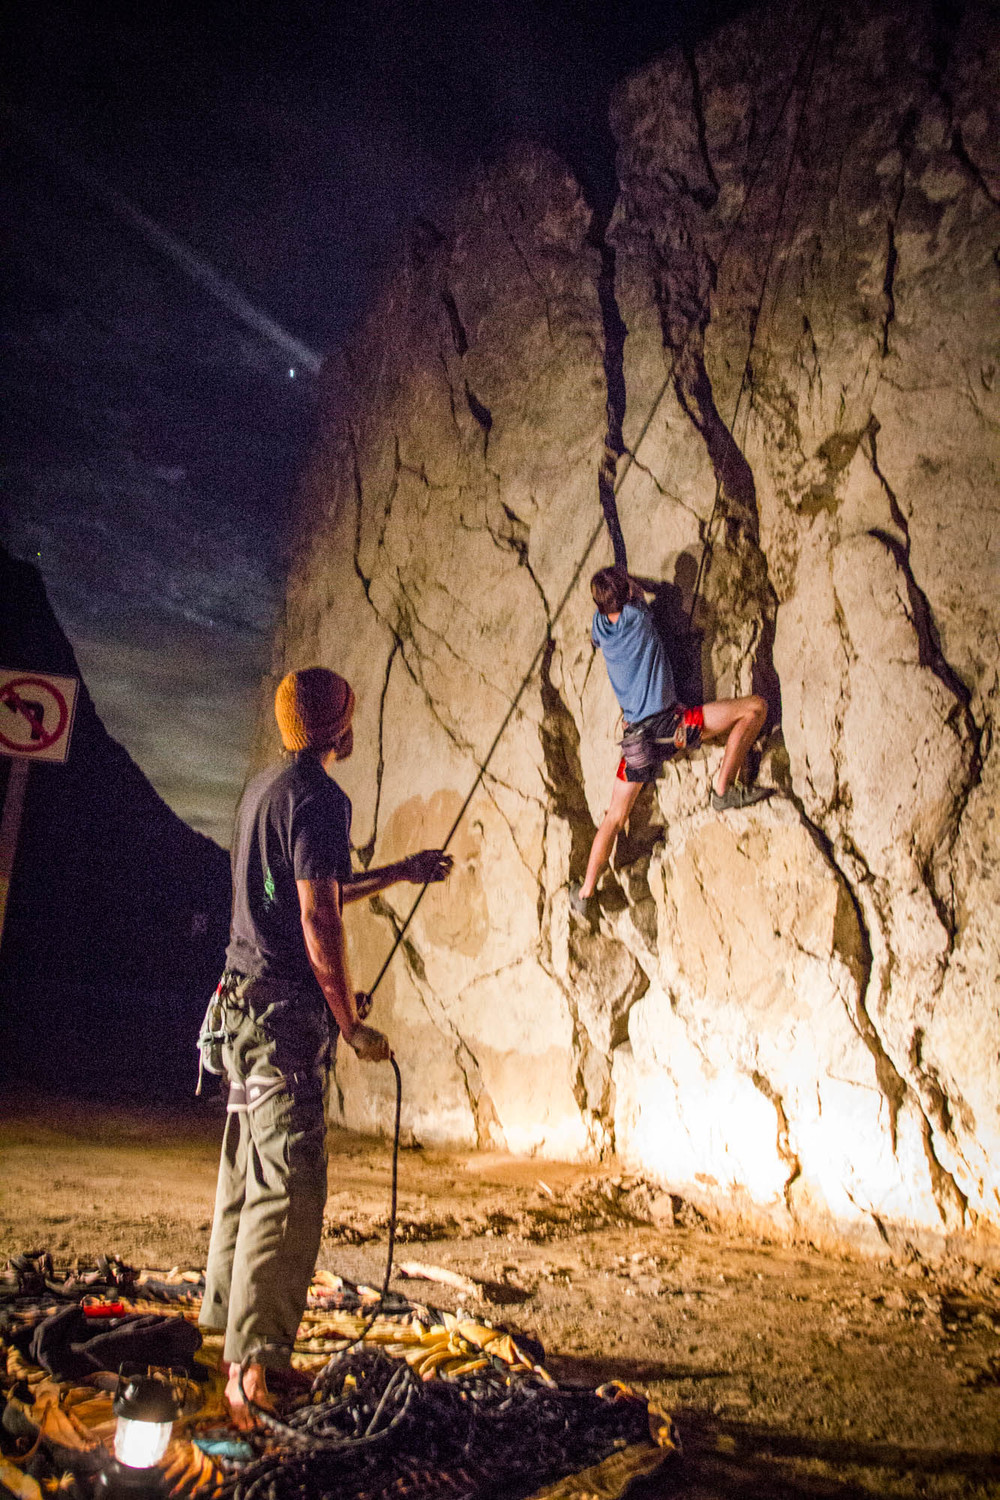 It's not a terribly long distance, but climbing took some time for them. A testament to the difficulty of their task.